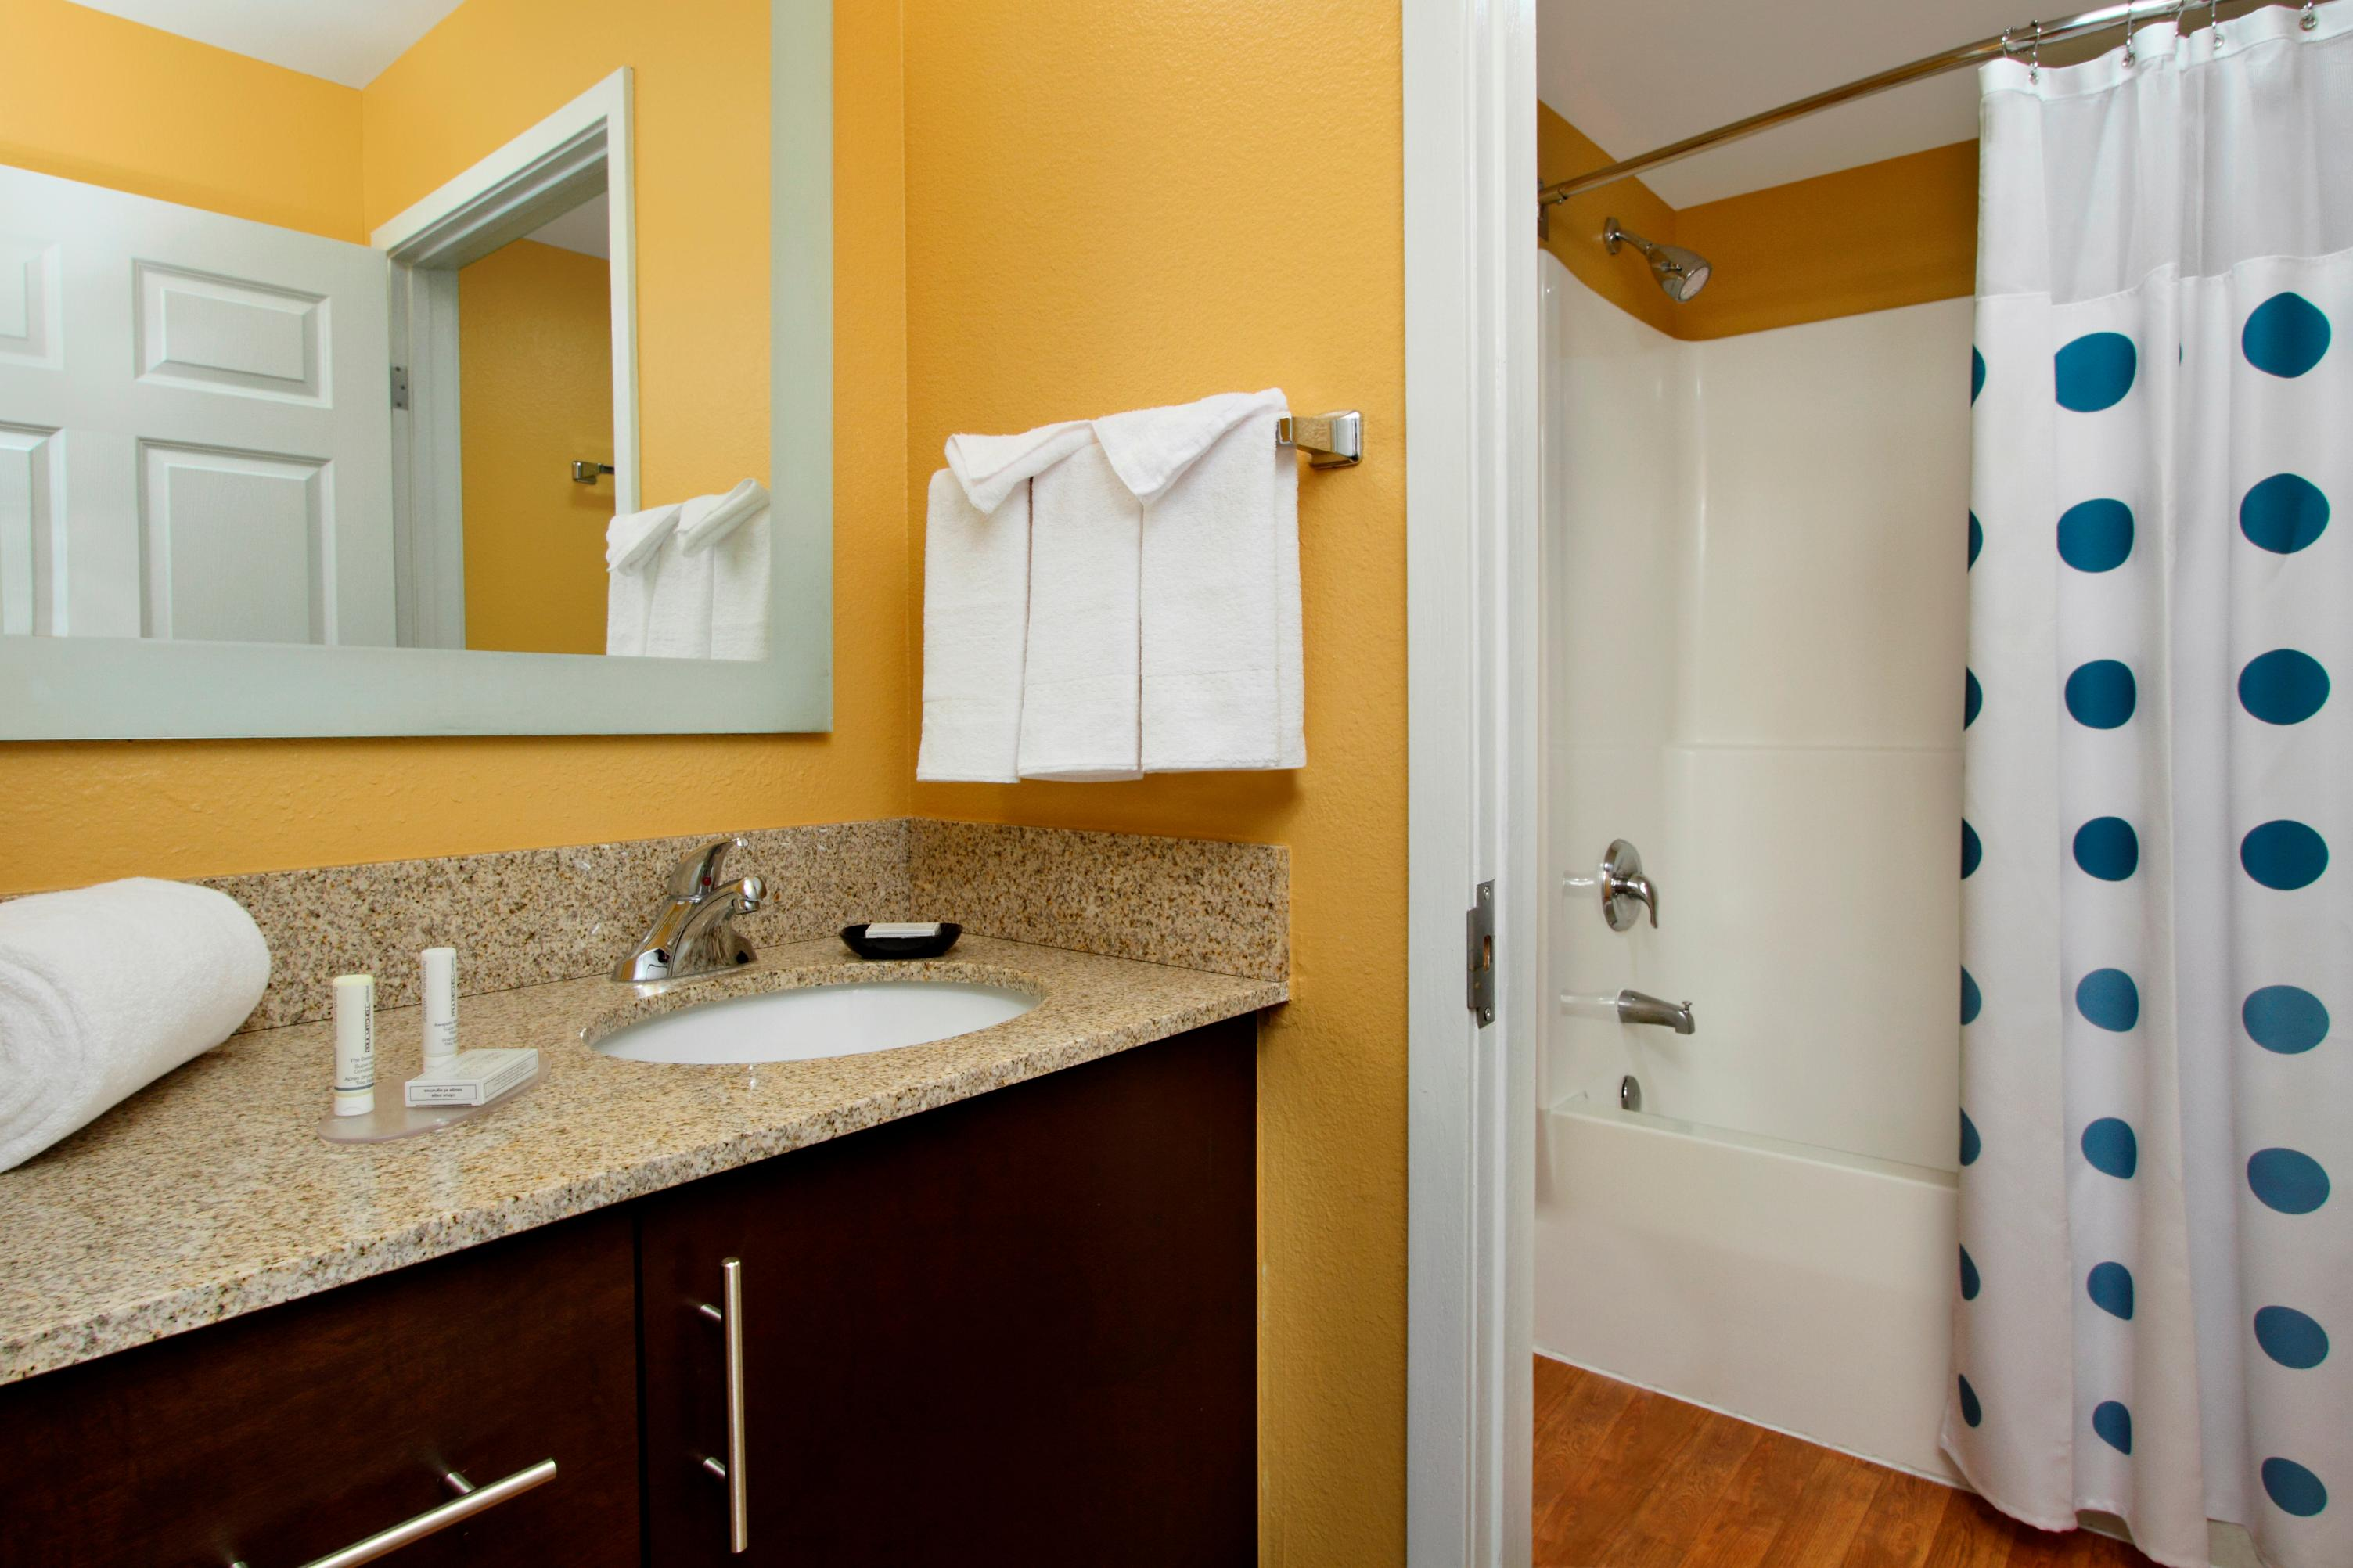 TownePlace Suites by Marriott Newark Silicon Valley image 9